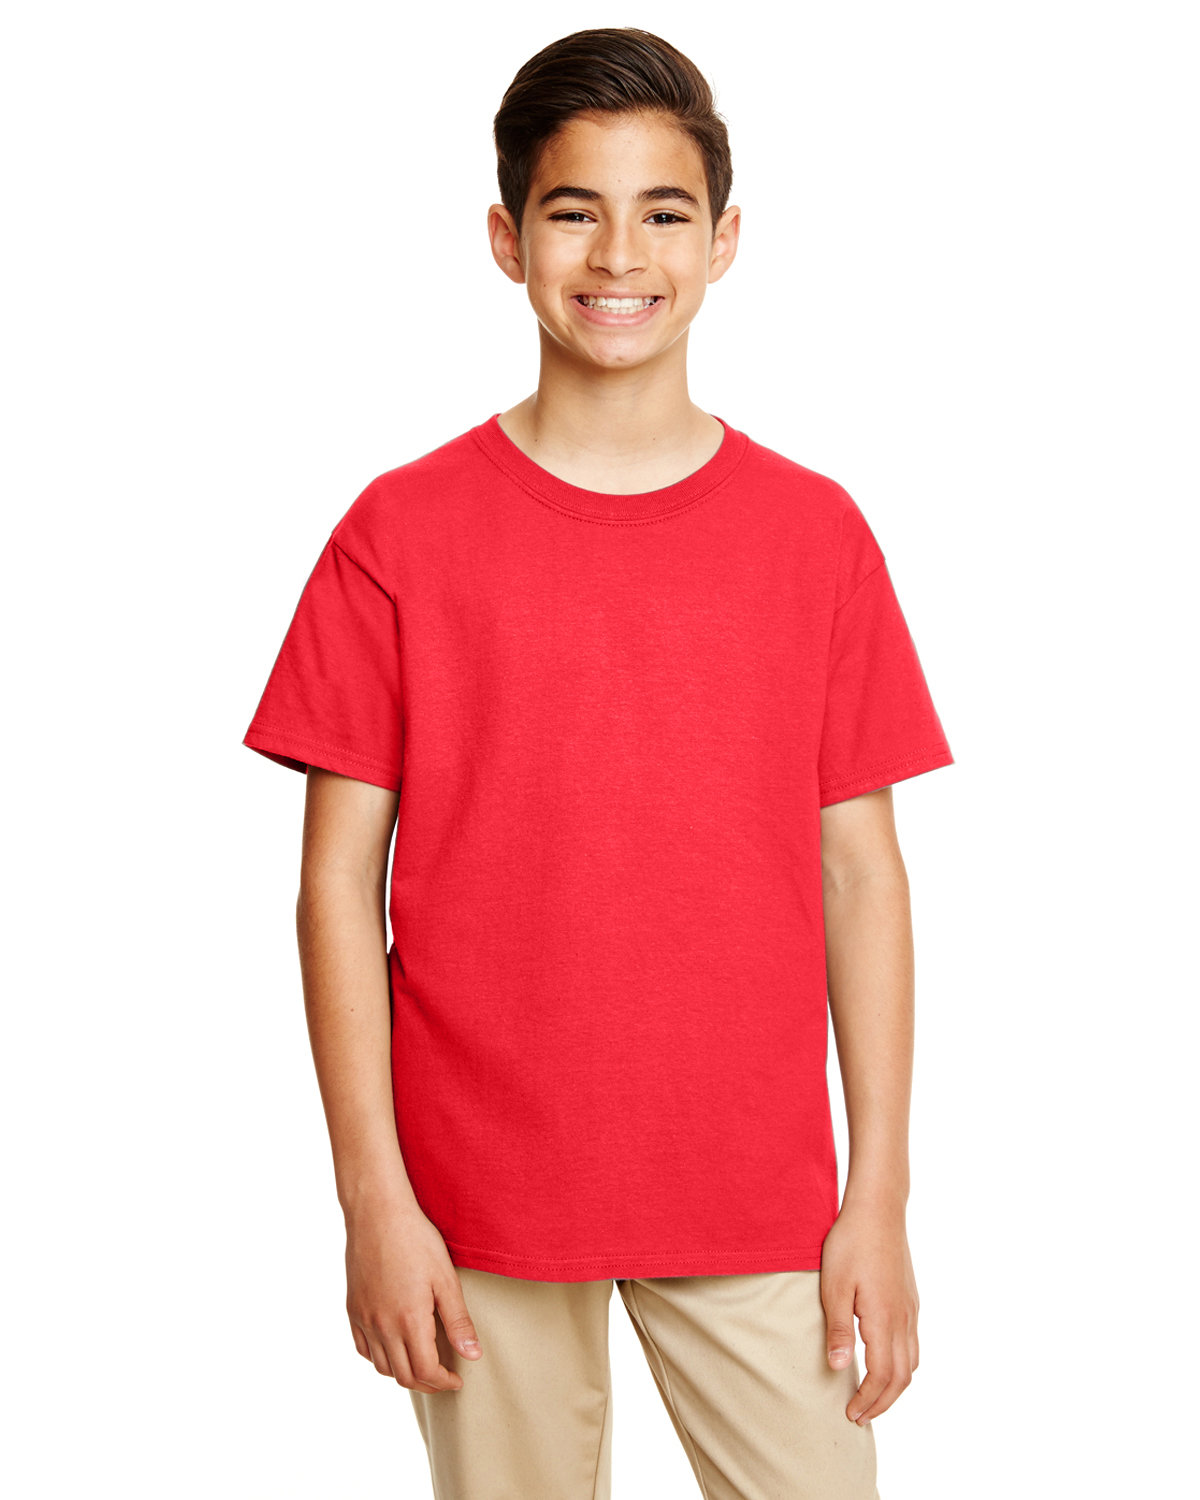 Gildan Youth Softstyle® 4.5 oz. T-Shirt RED